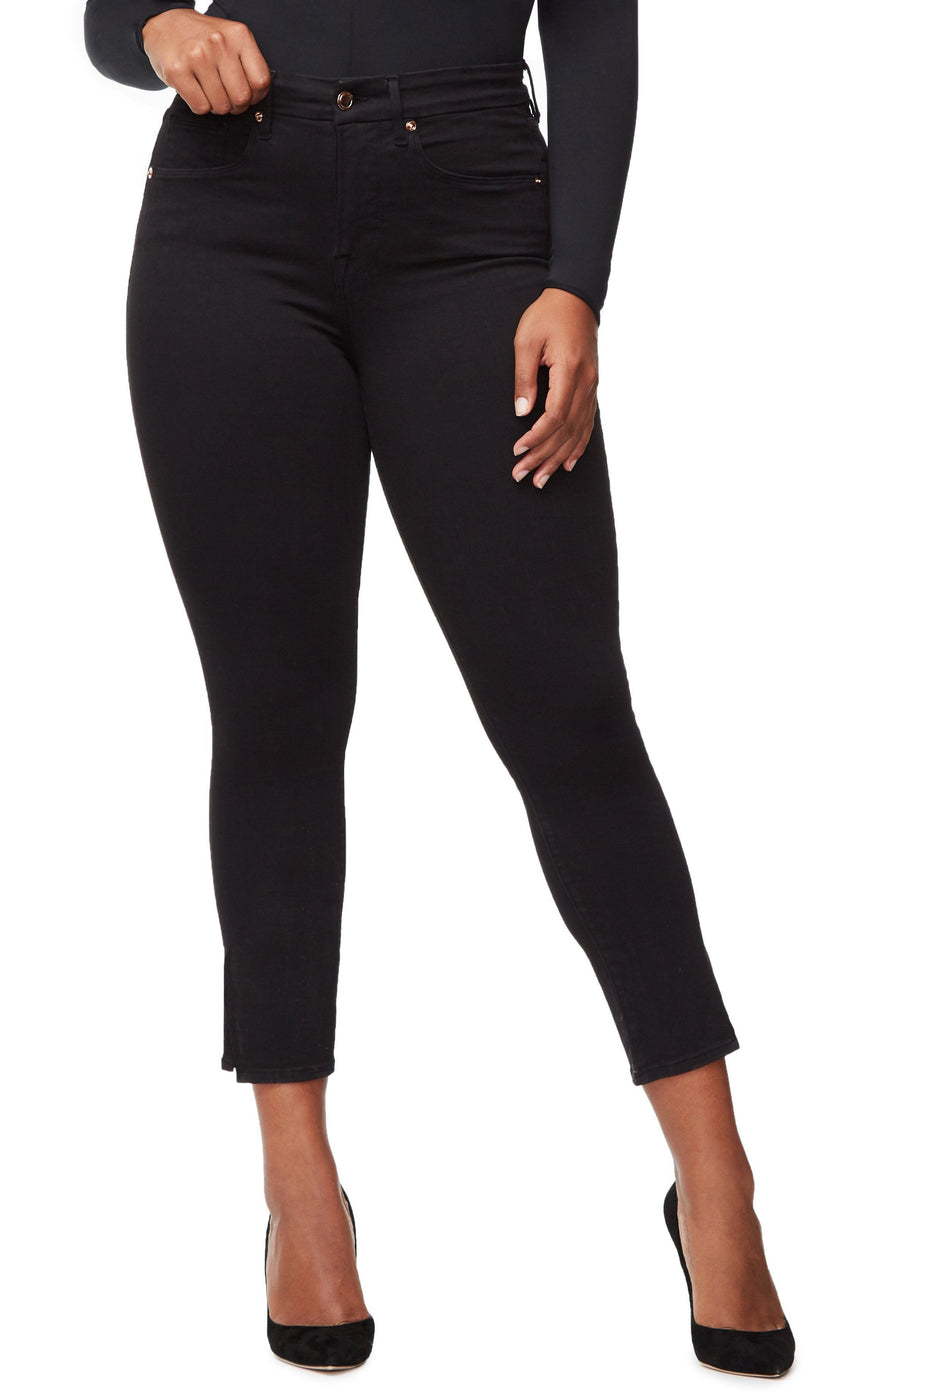 Good American Super High Waisted Crop Side Slit Black001 Jeans